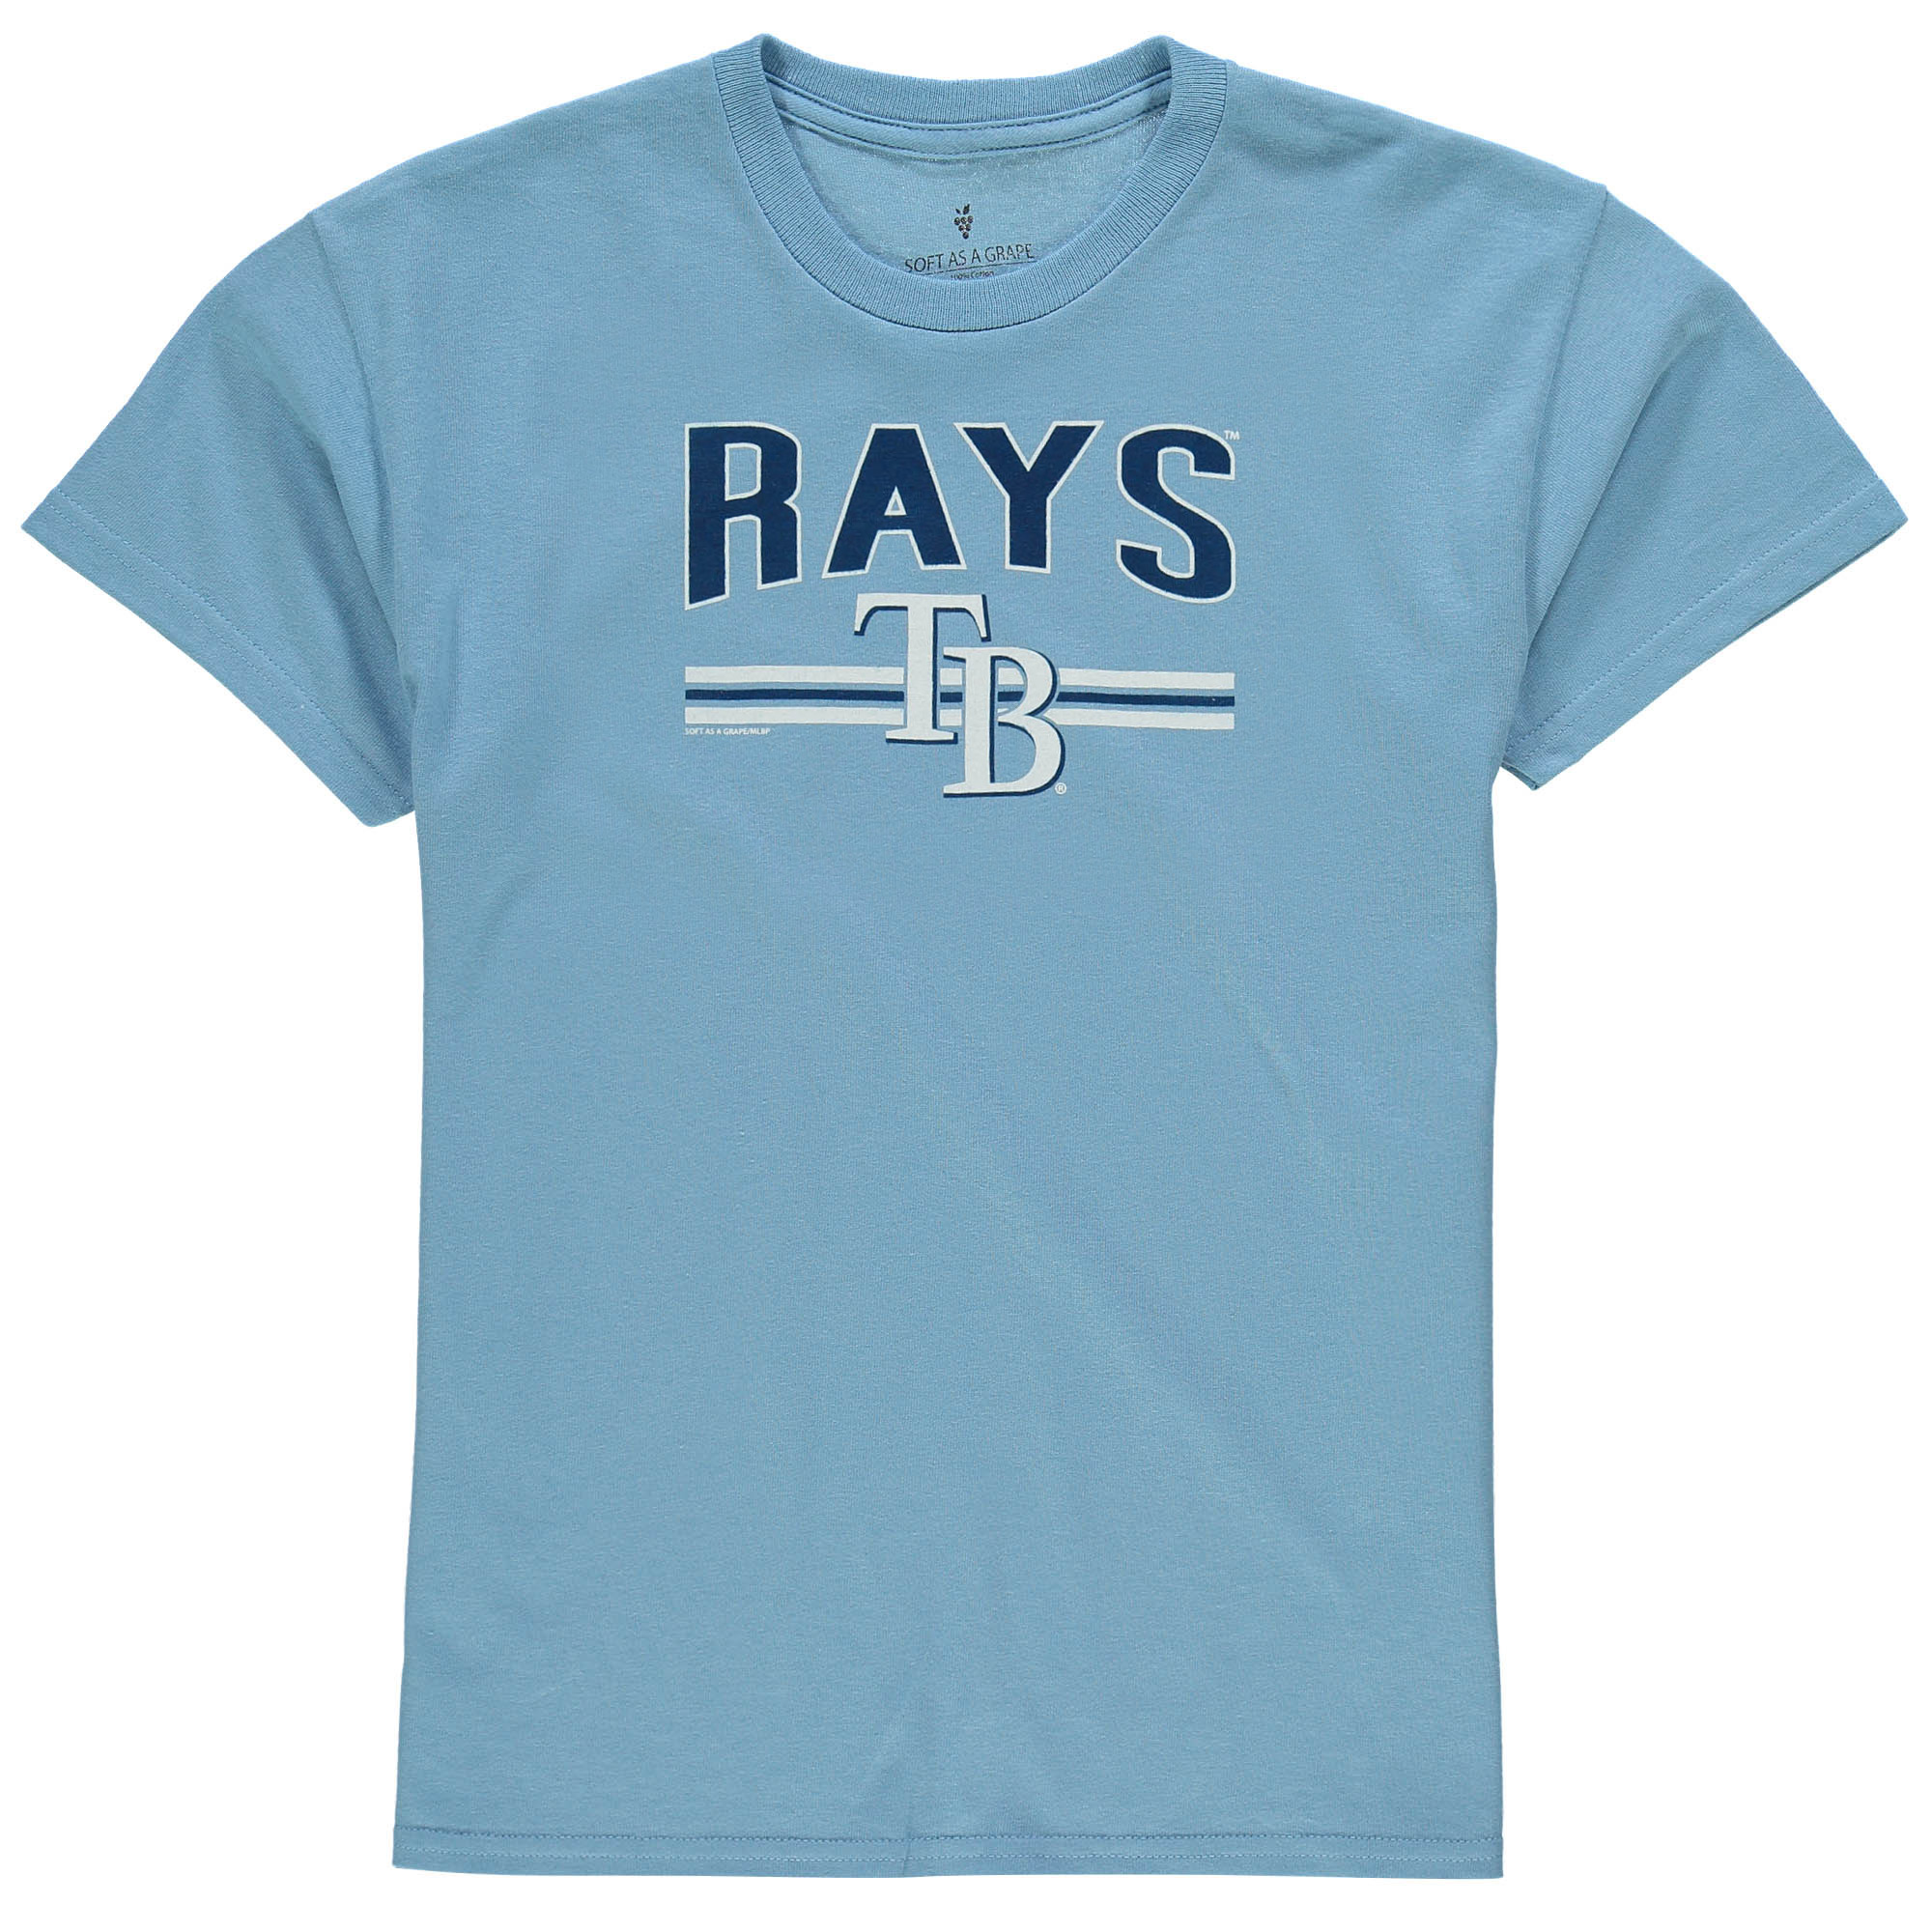 Tampa Bay Rays Soft as a Grape Youth On Base Crew T-Shirt - Light Blue